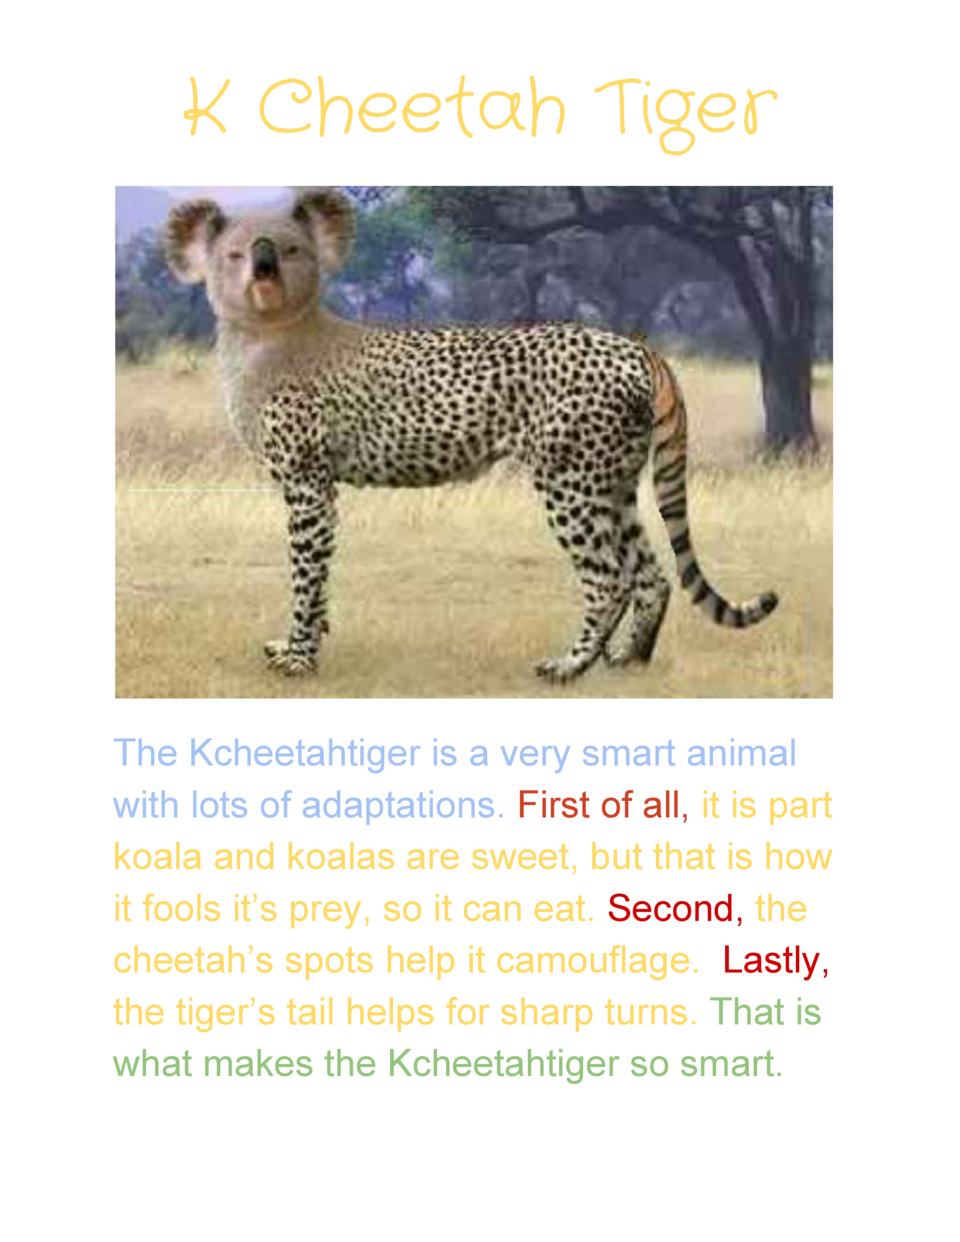 K Cheetah Tiger         The  Kcheetahtiger  is  a  very  smart  animal   with  lots  of  adaptations.      First  of  ...